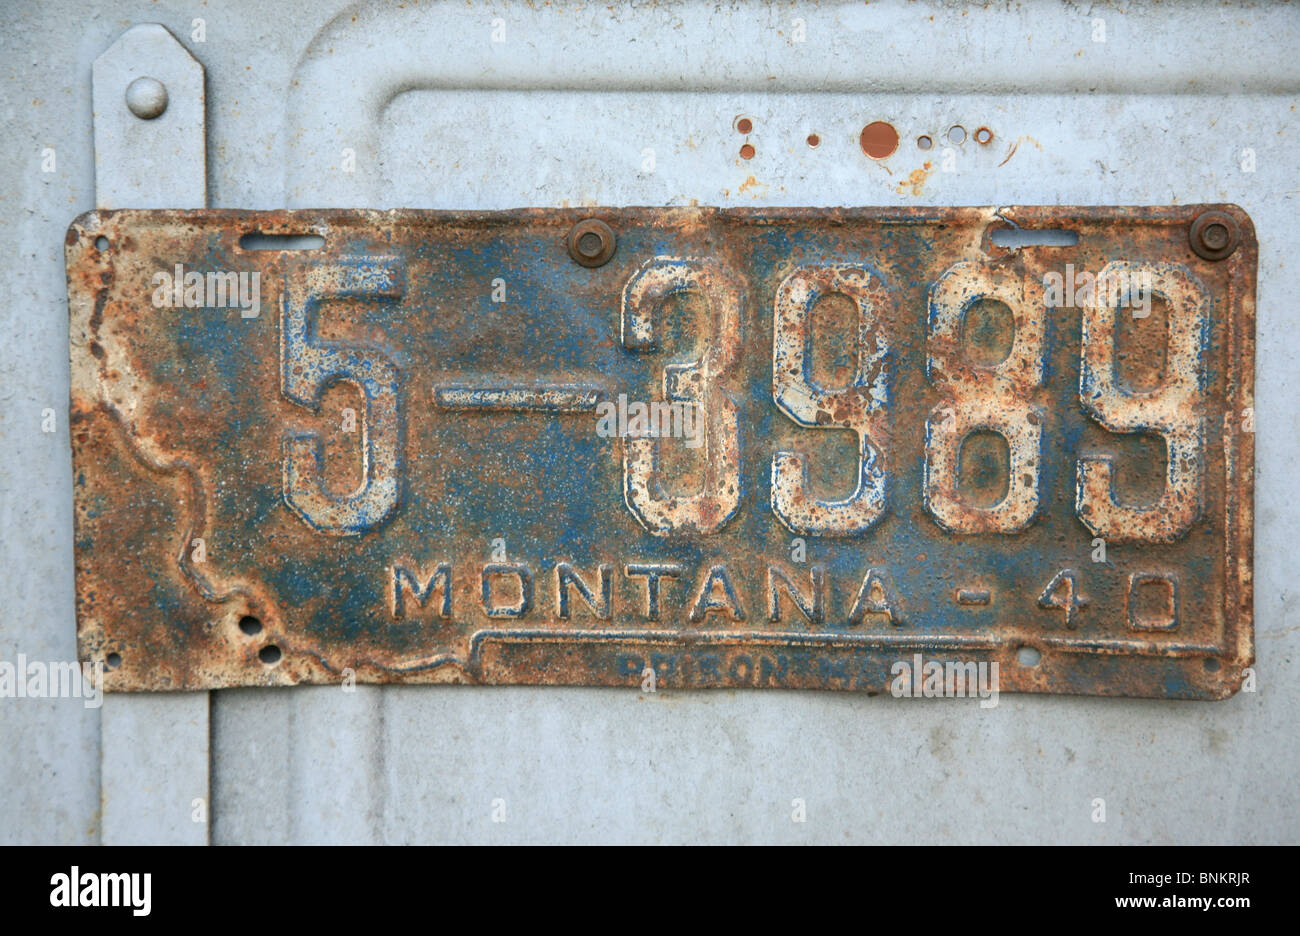 Old rusty license plate Stock Photo: 30553791 - Alamy